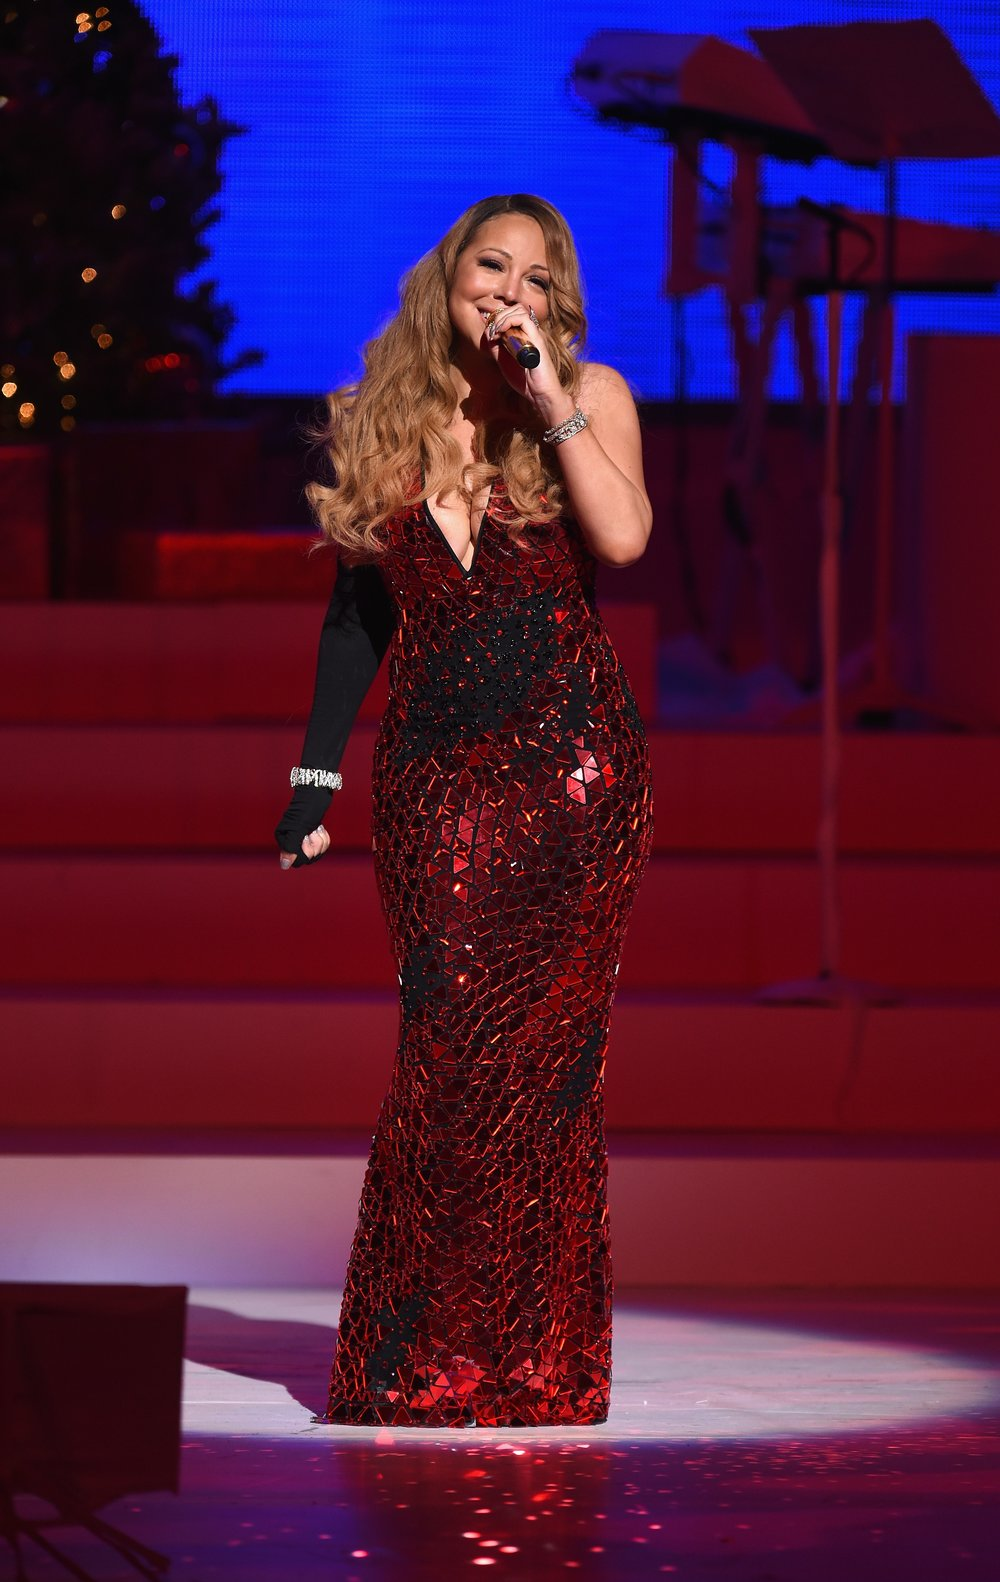 Mariah Carey performing at the Beacon Theatre on December 15, 2014 in New York City